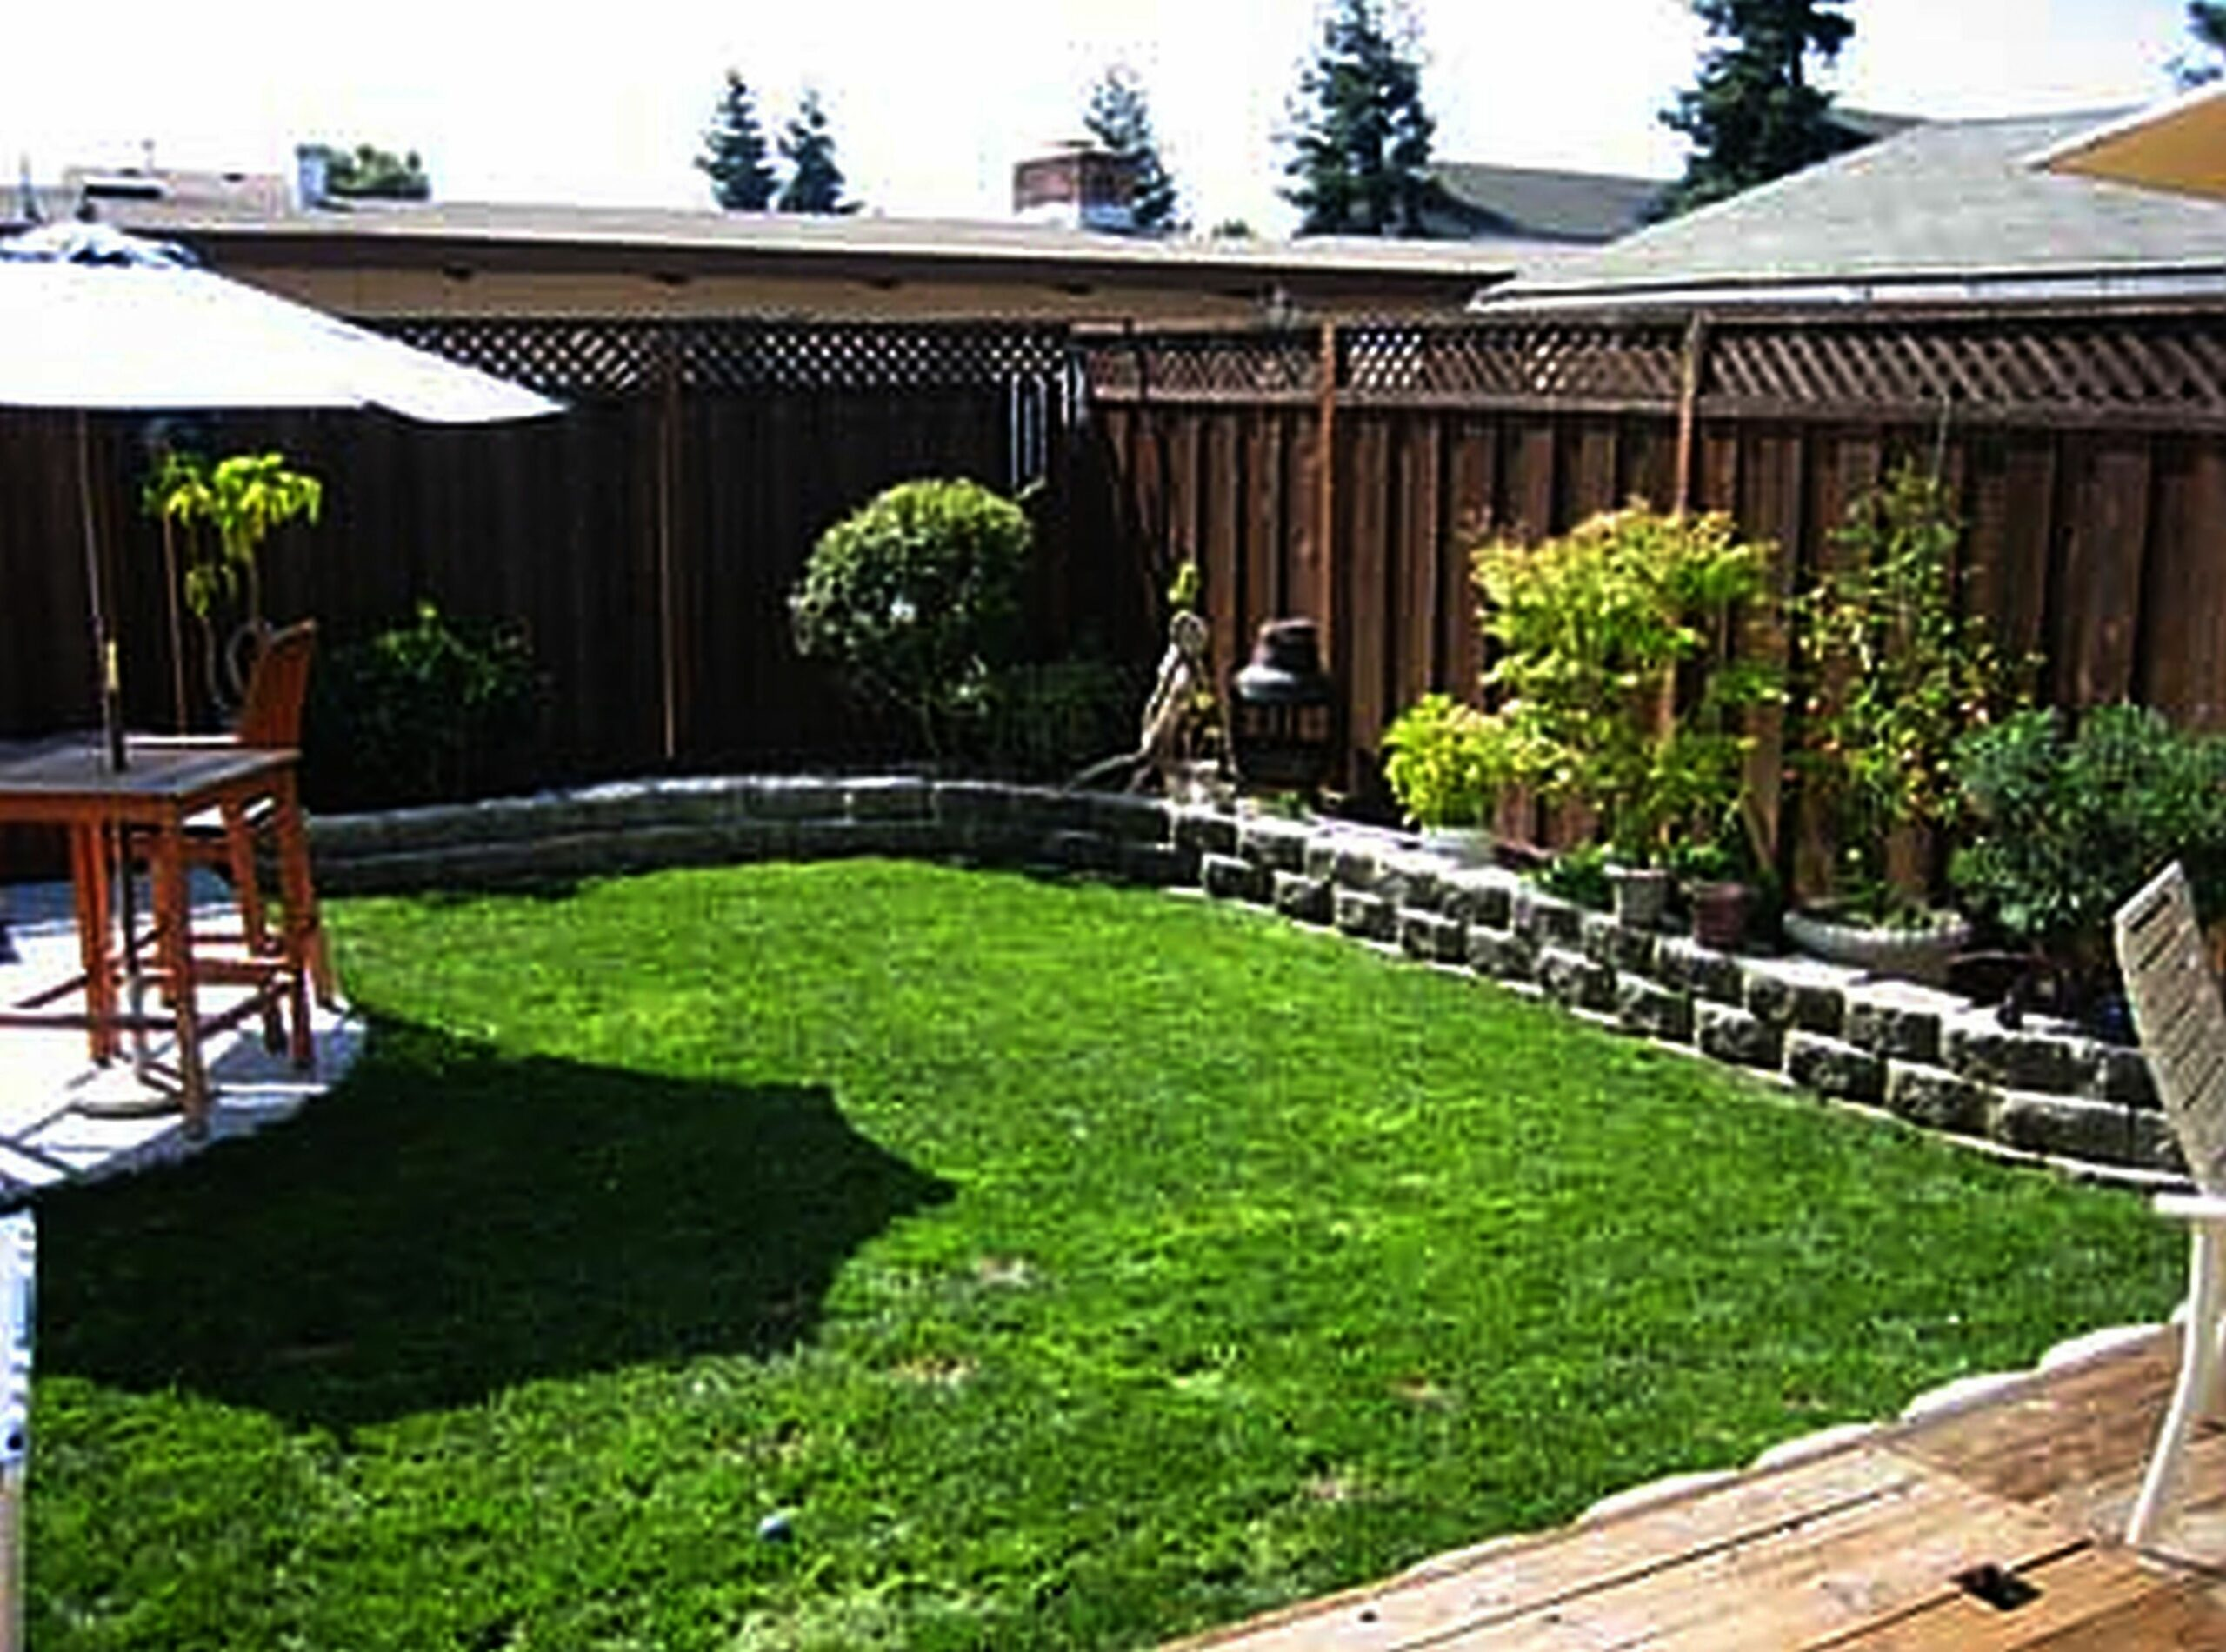 Solid Advice For Landscaping Around Your Home (With images) | Easy ..